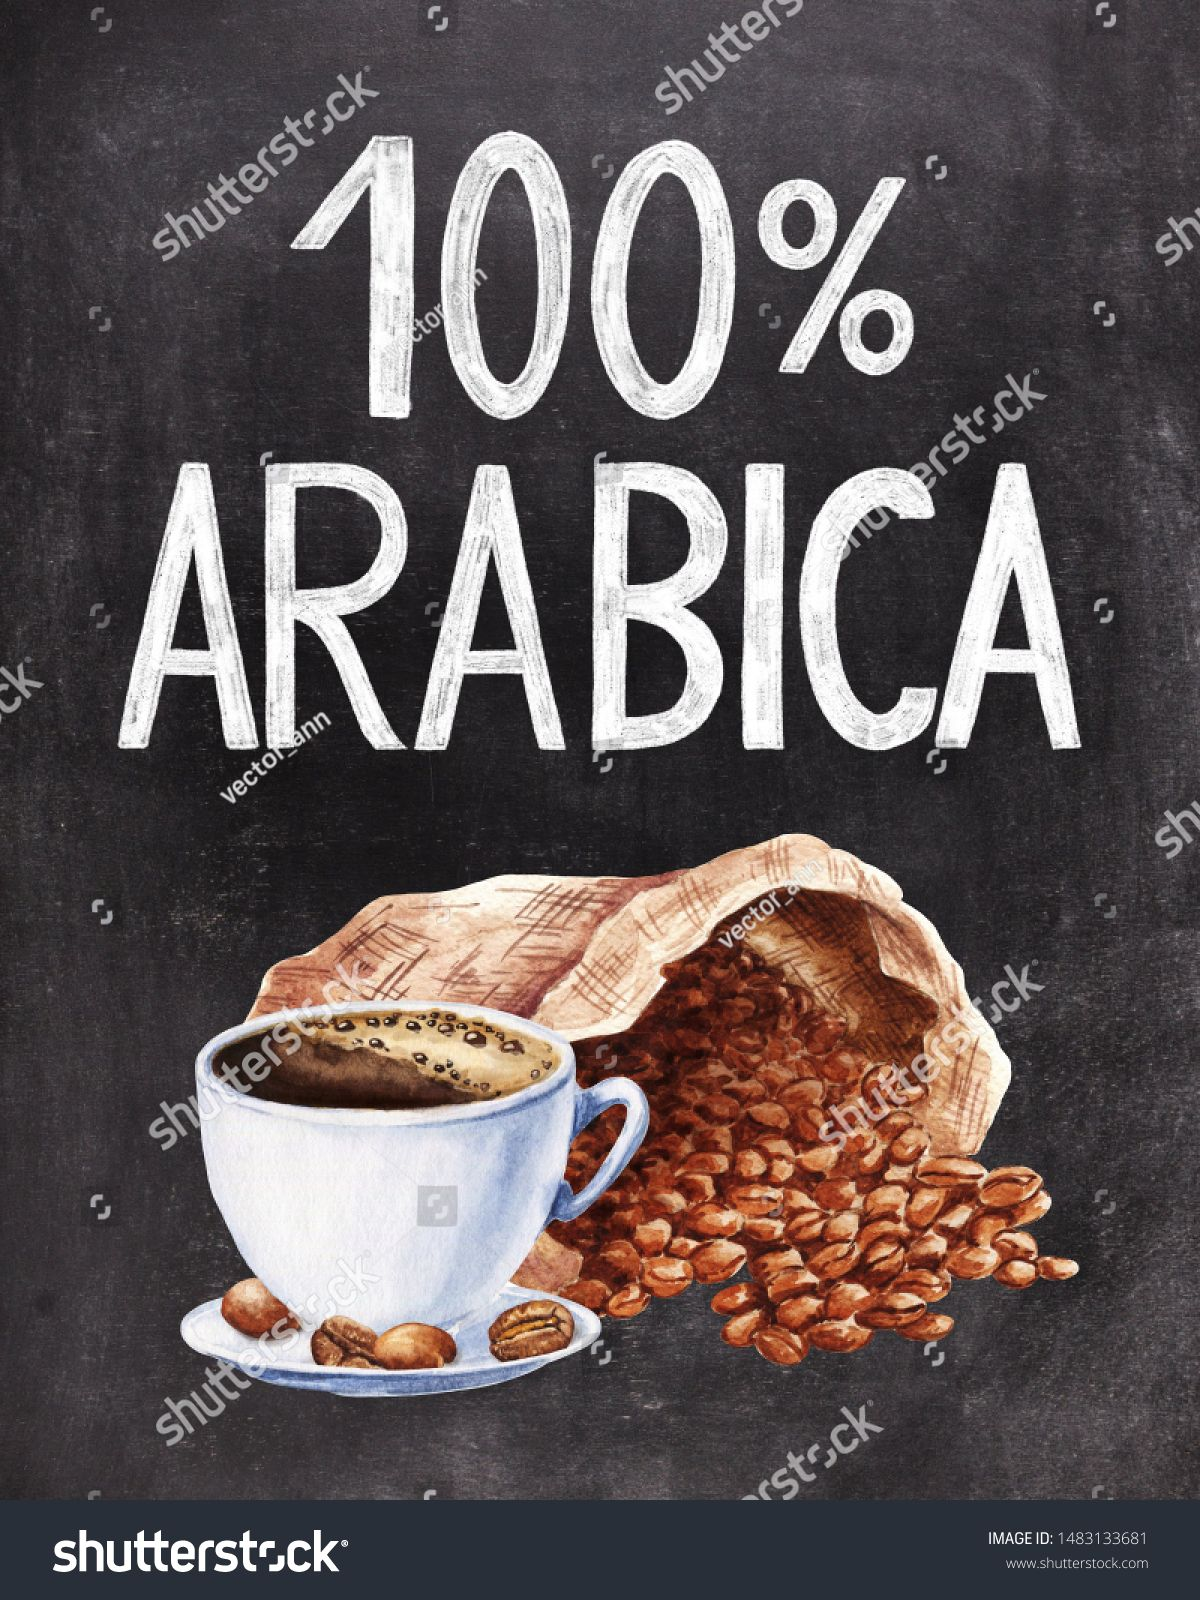 100 Arabica chalk hand lettering on black chalkboard background with coffee cup and sack of beans illustration Vintage food design